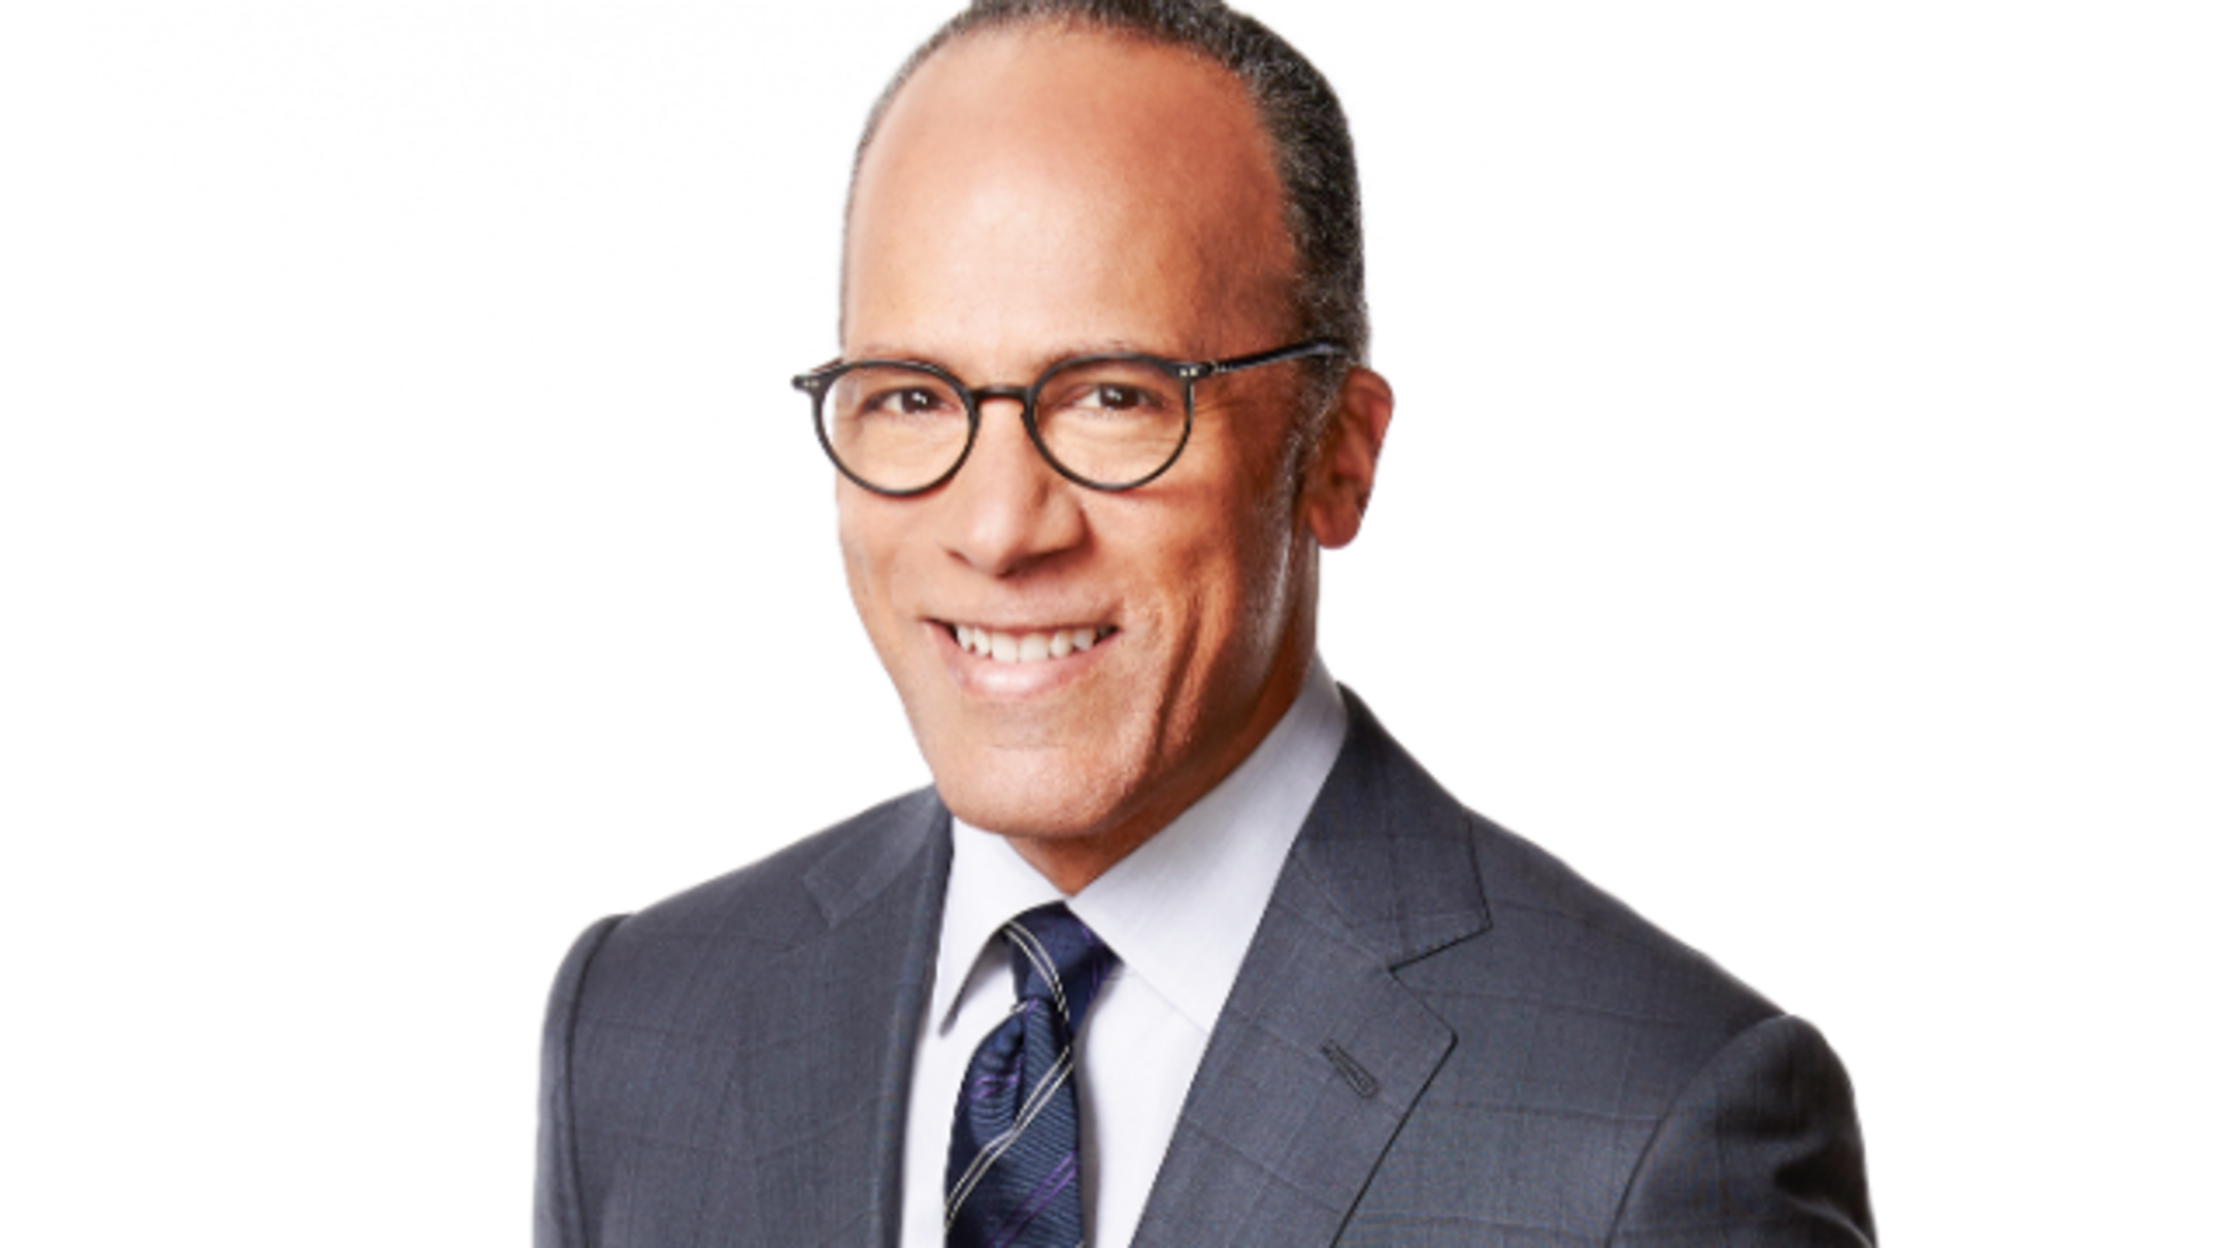 Lester Holt Net Worth